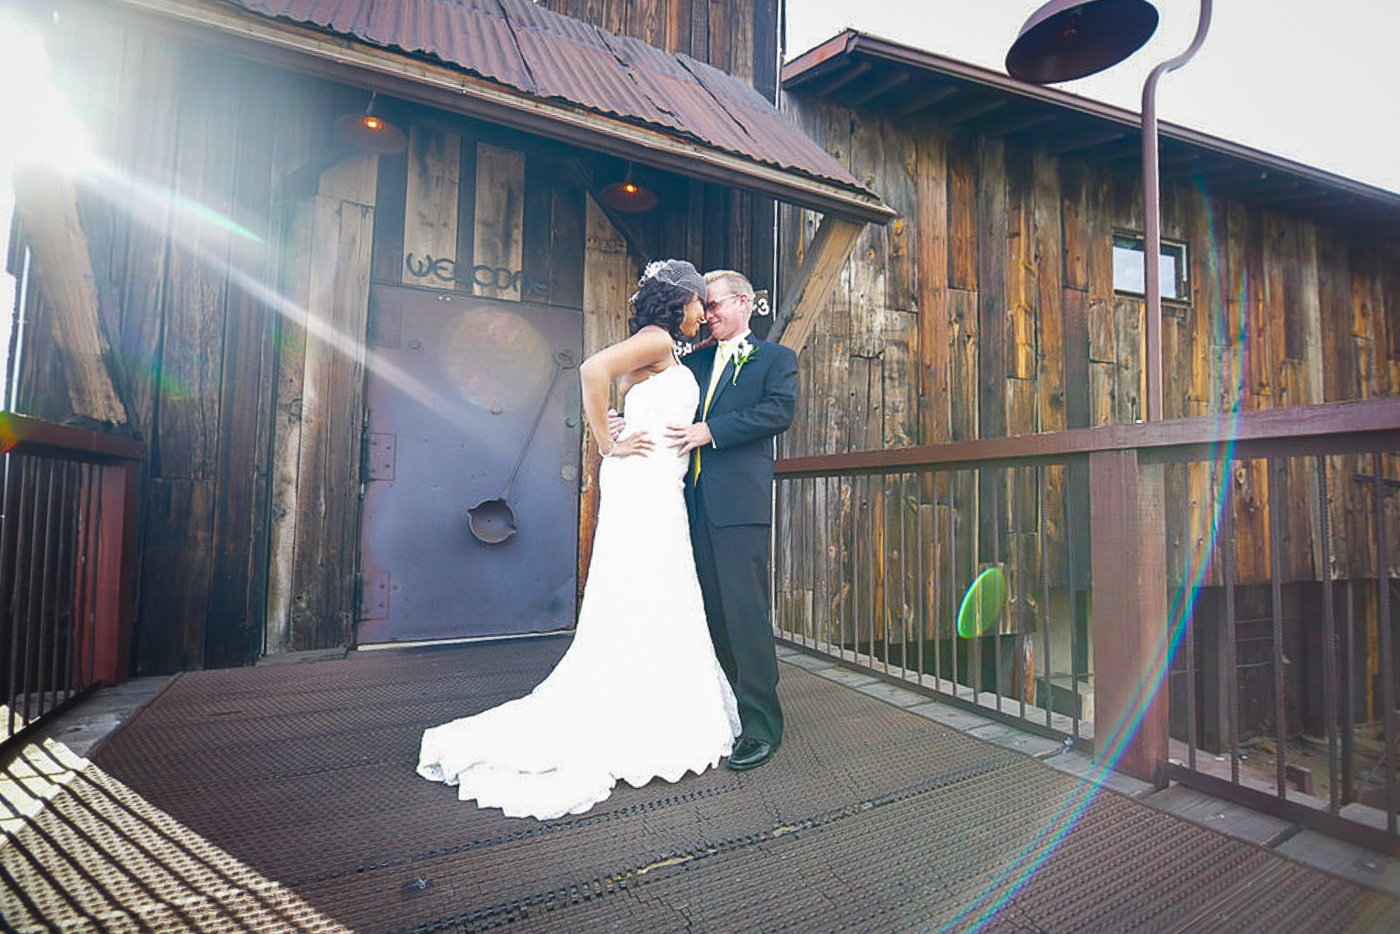 Bride and groom at sunset after wedding ceremony at orange county mining co